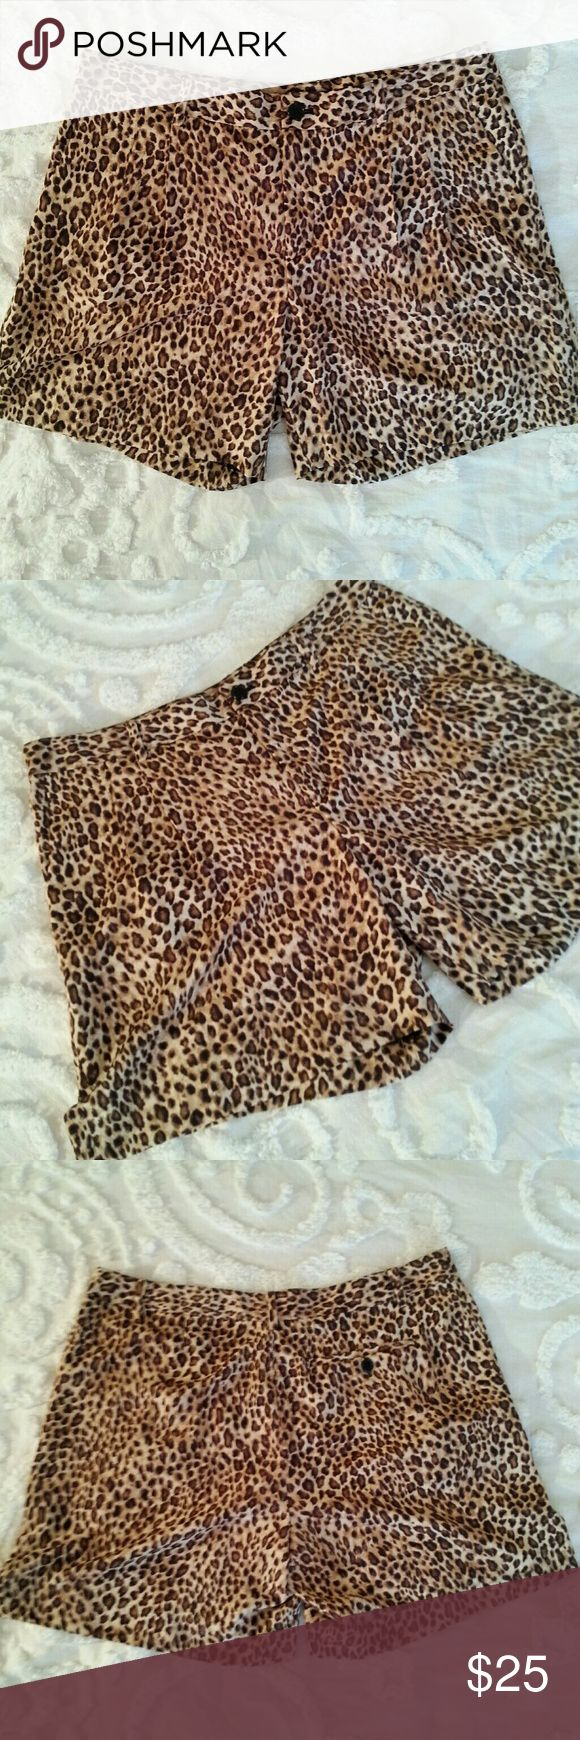 🆕 Ralph Lauren Leopard Shorts Super cute and perfect for spring and summer in excellent condition. Really light weight and flowy fabric. Ralph Lauren Shorts